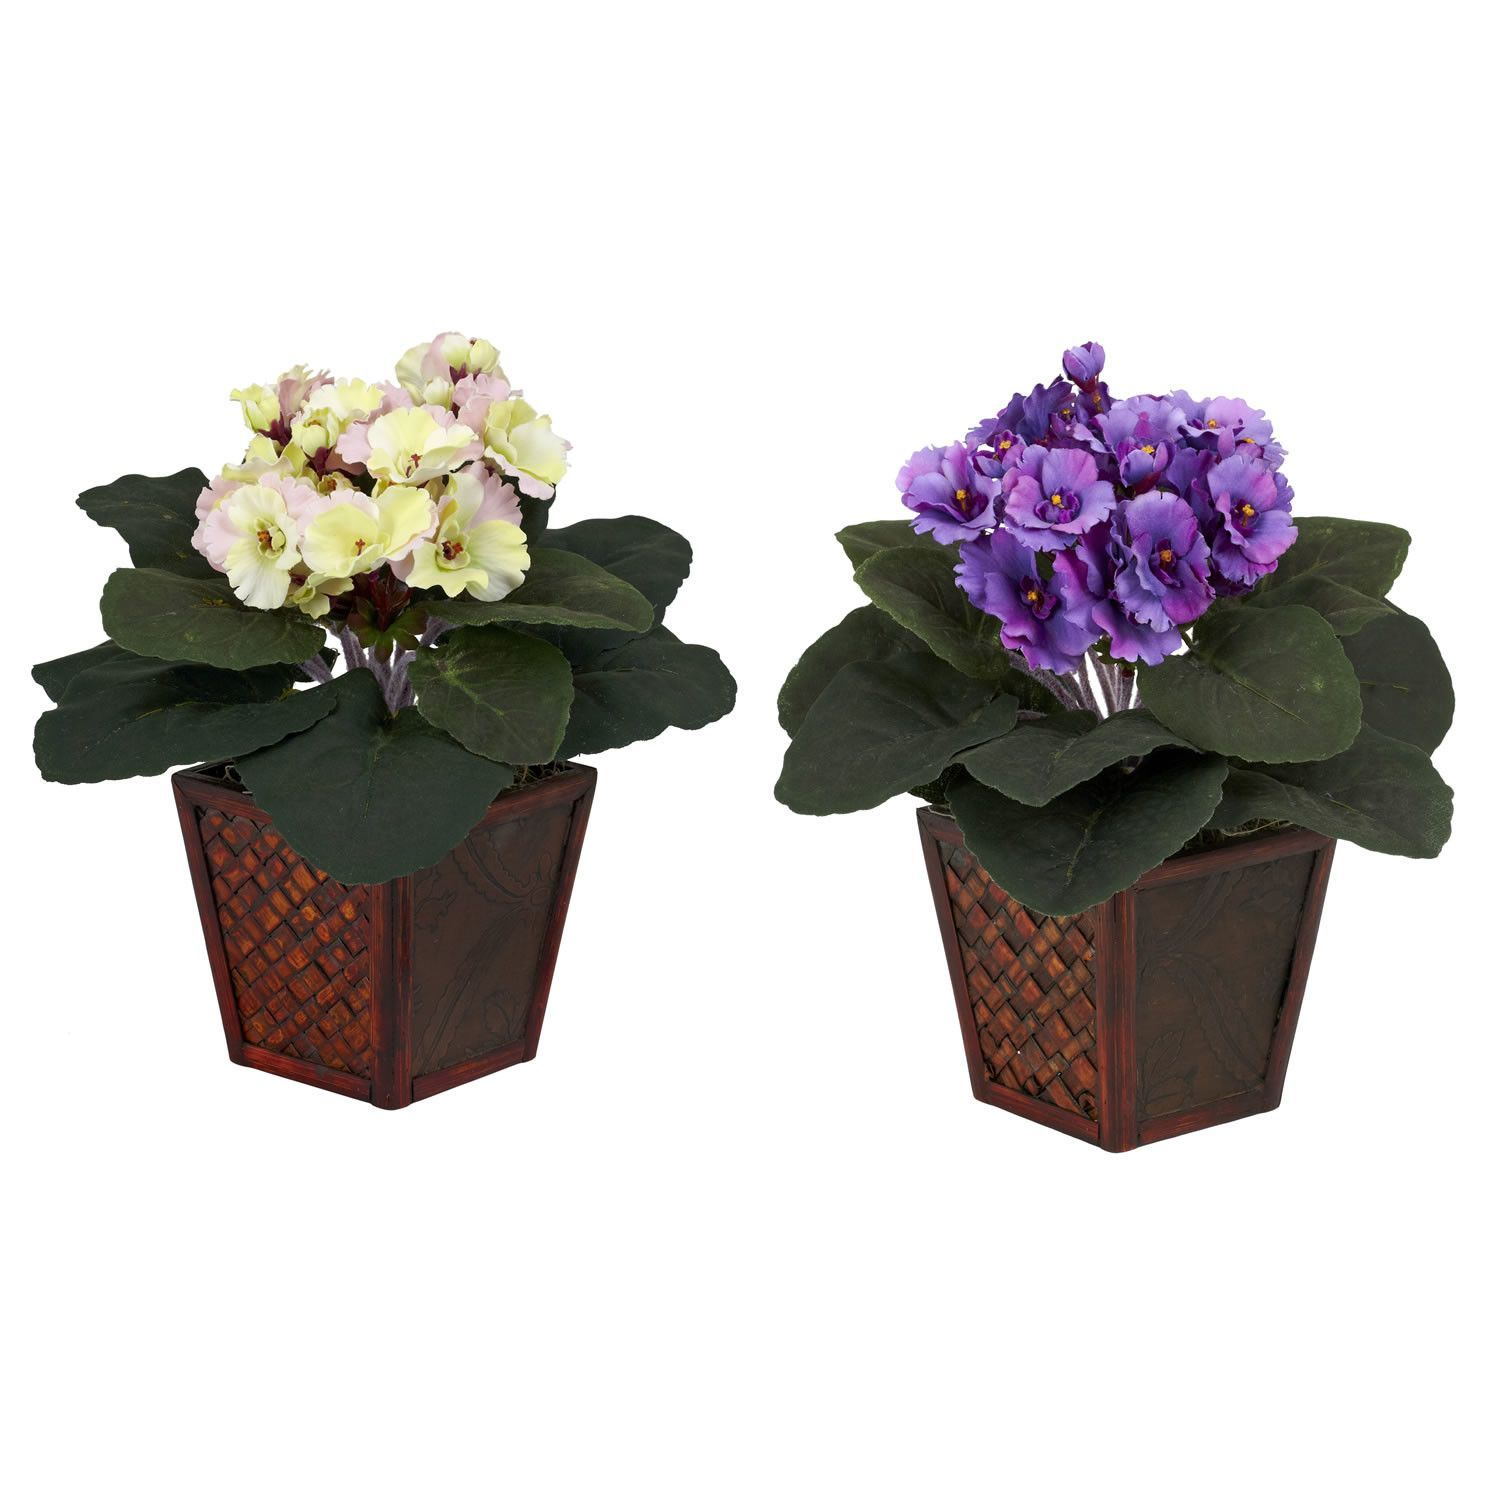 African Violet Desk Top Plant in Pot 2 Piece Set